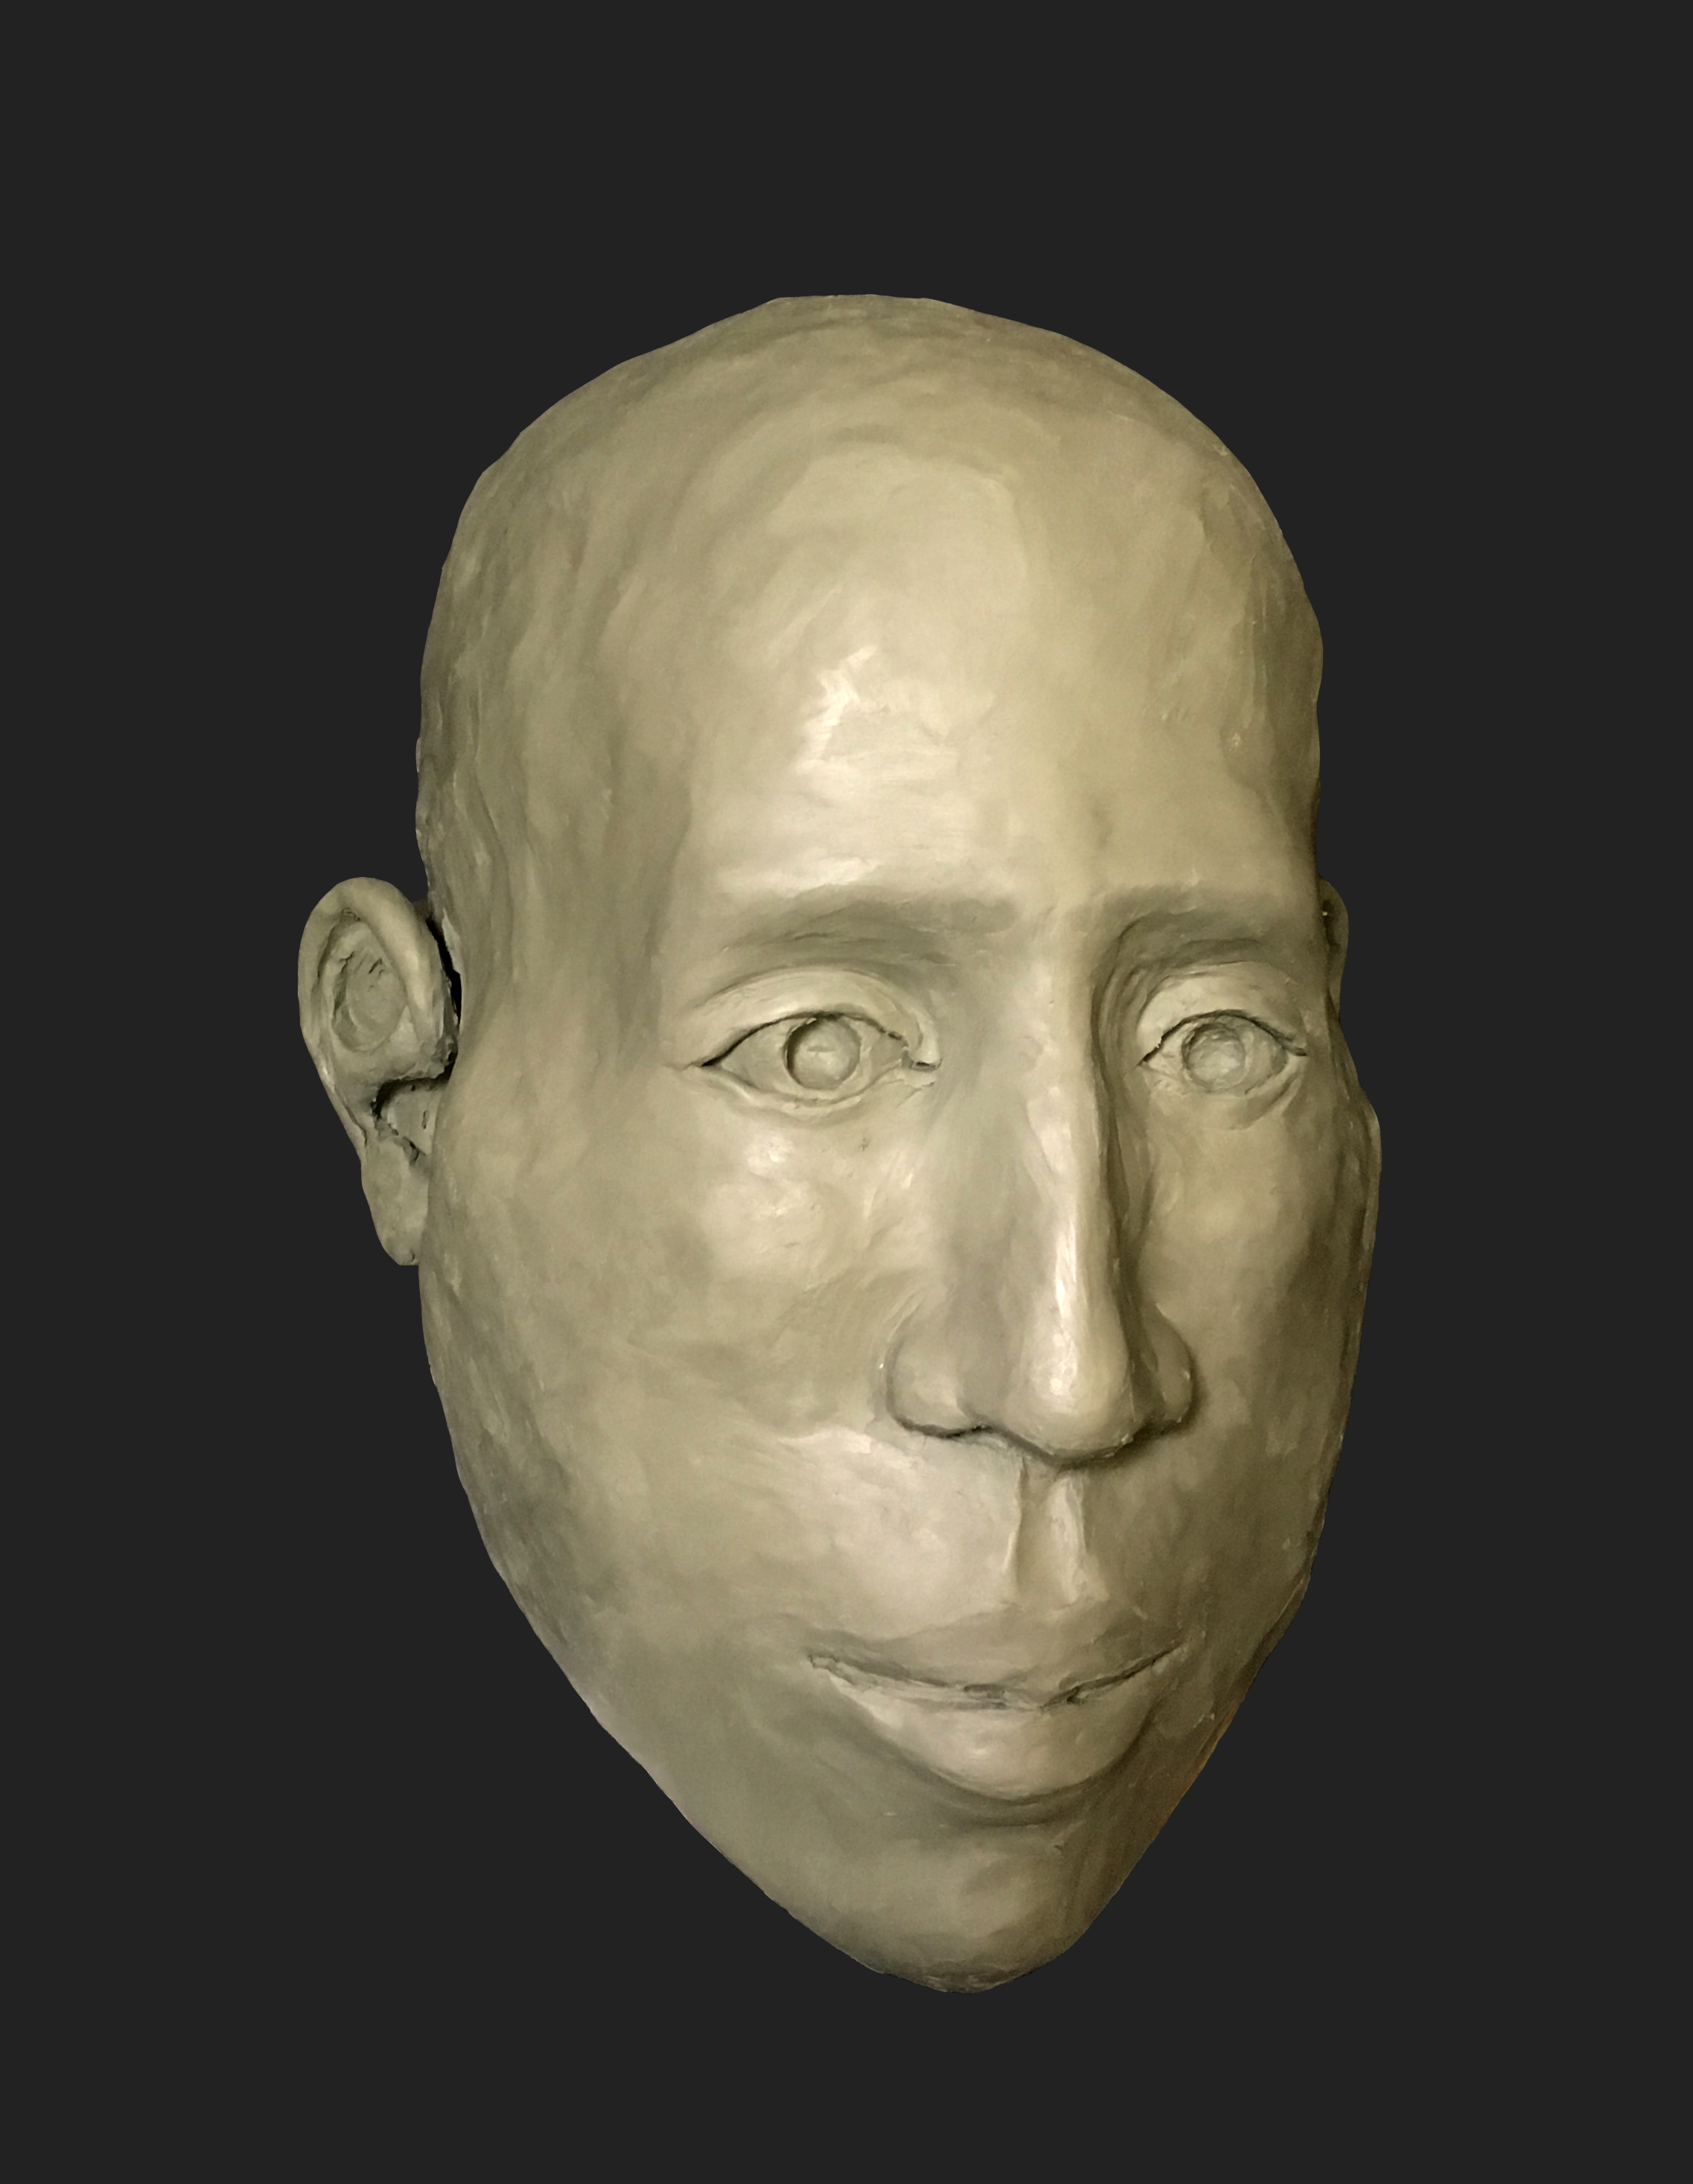 Figure 2: Forensic facial approximation of crania #0841 of the Morton Cranial Collection, Penn Museum. Approximation and photograph by Elizabeth Bouton, 2018.